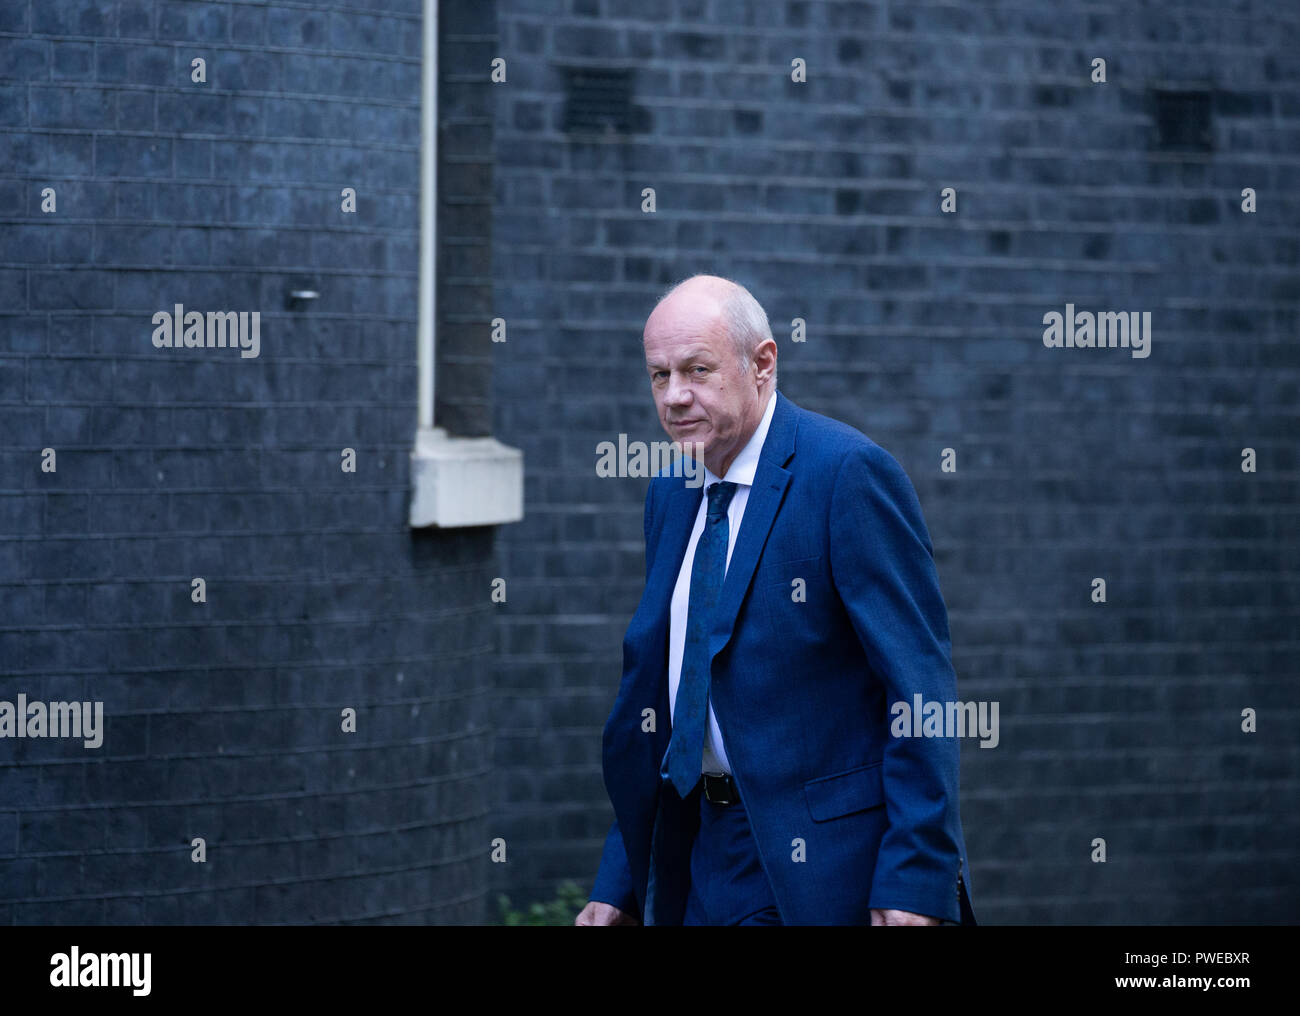 London, UK. 16th Oct 2018. Damian Green arrives in Downing Street Credit: Tommy London/Alamy Live News - Stock Image